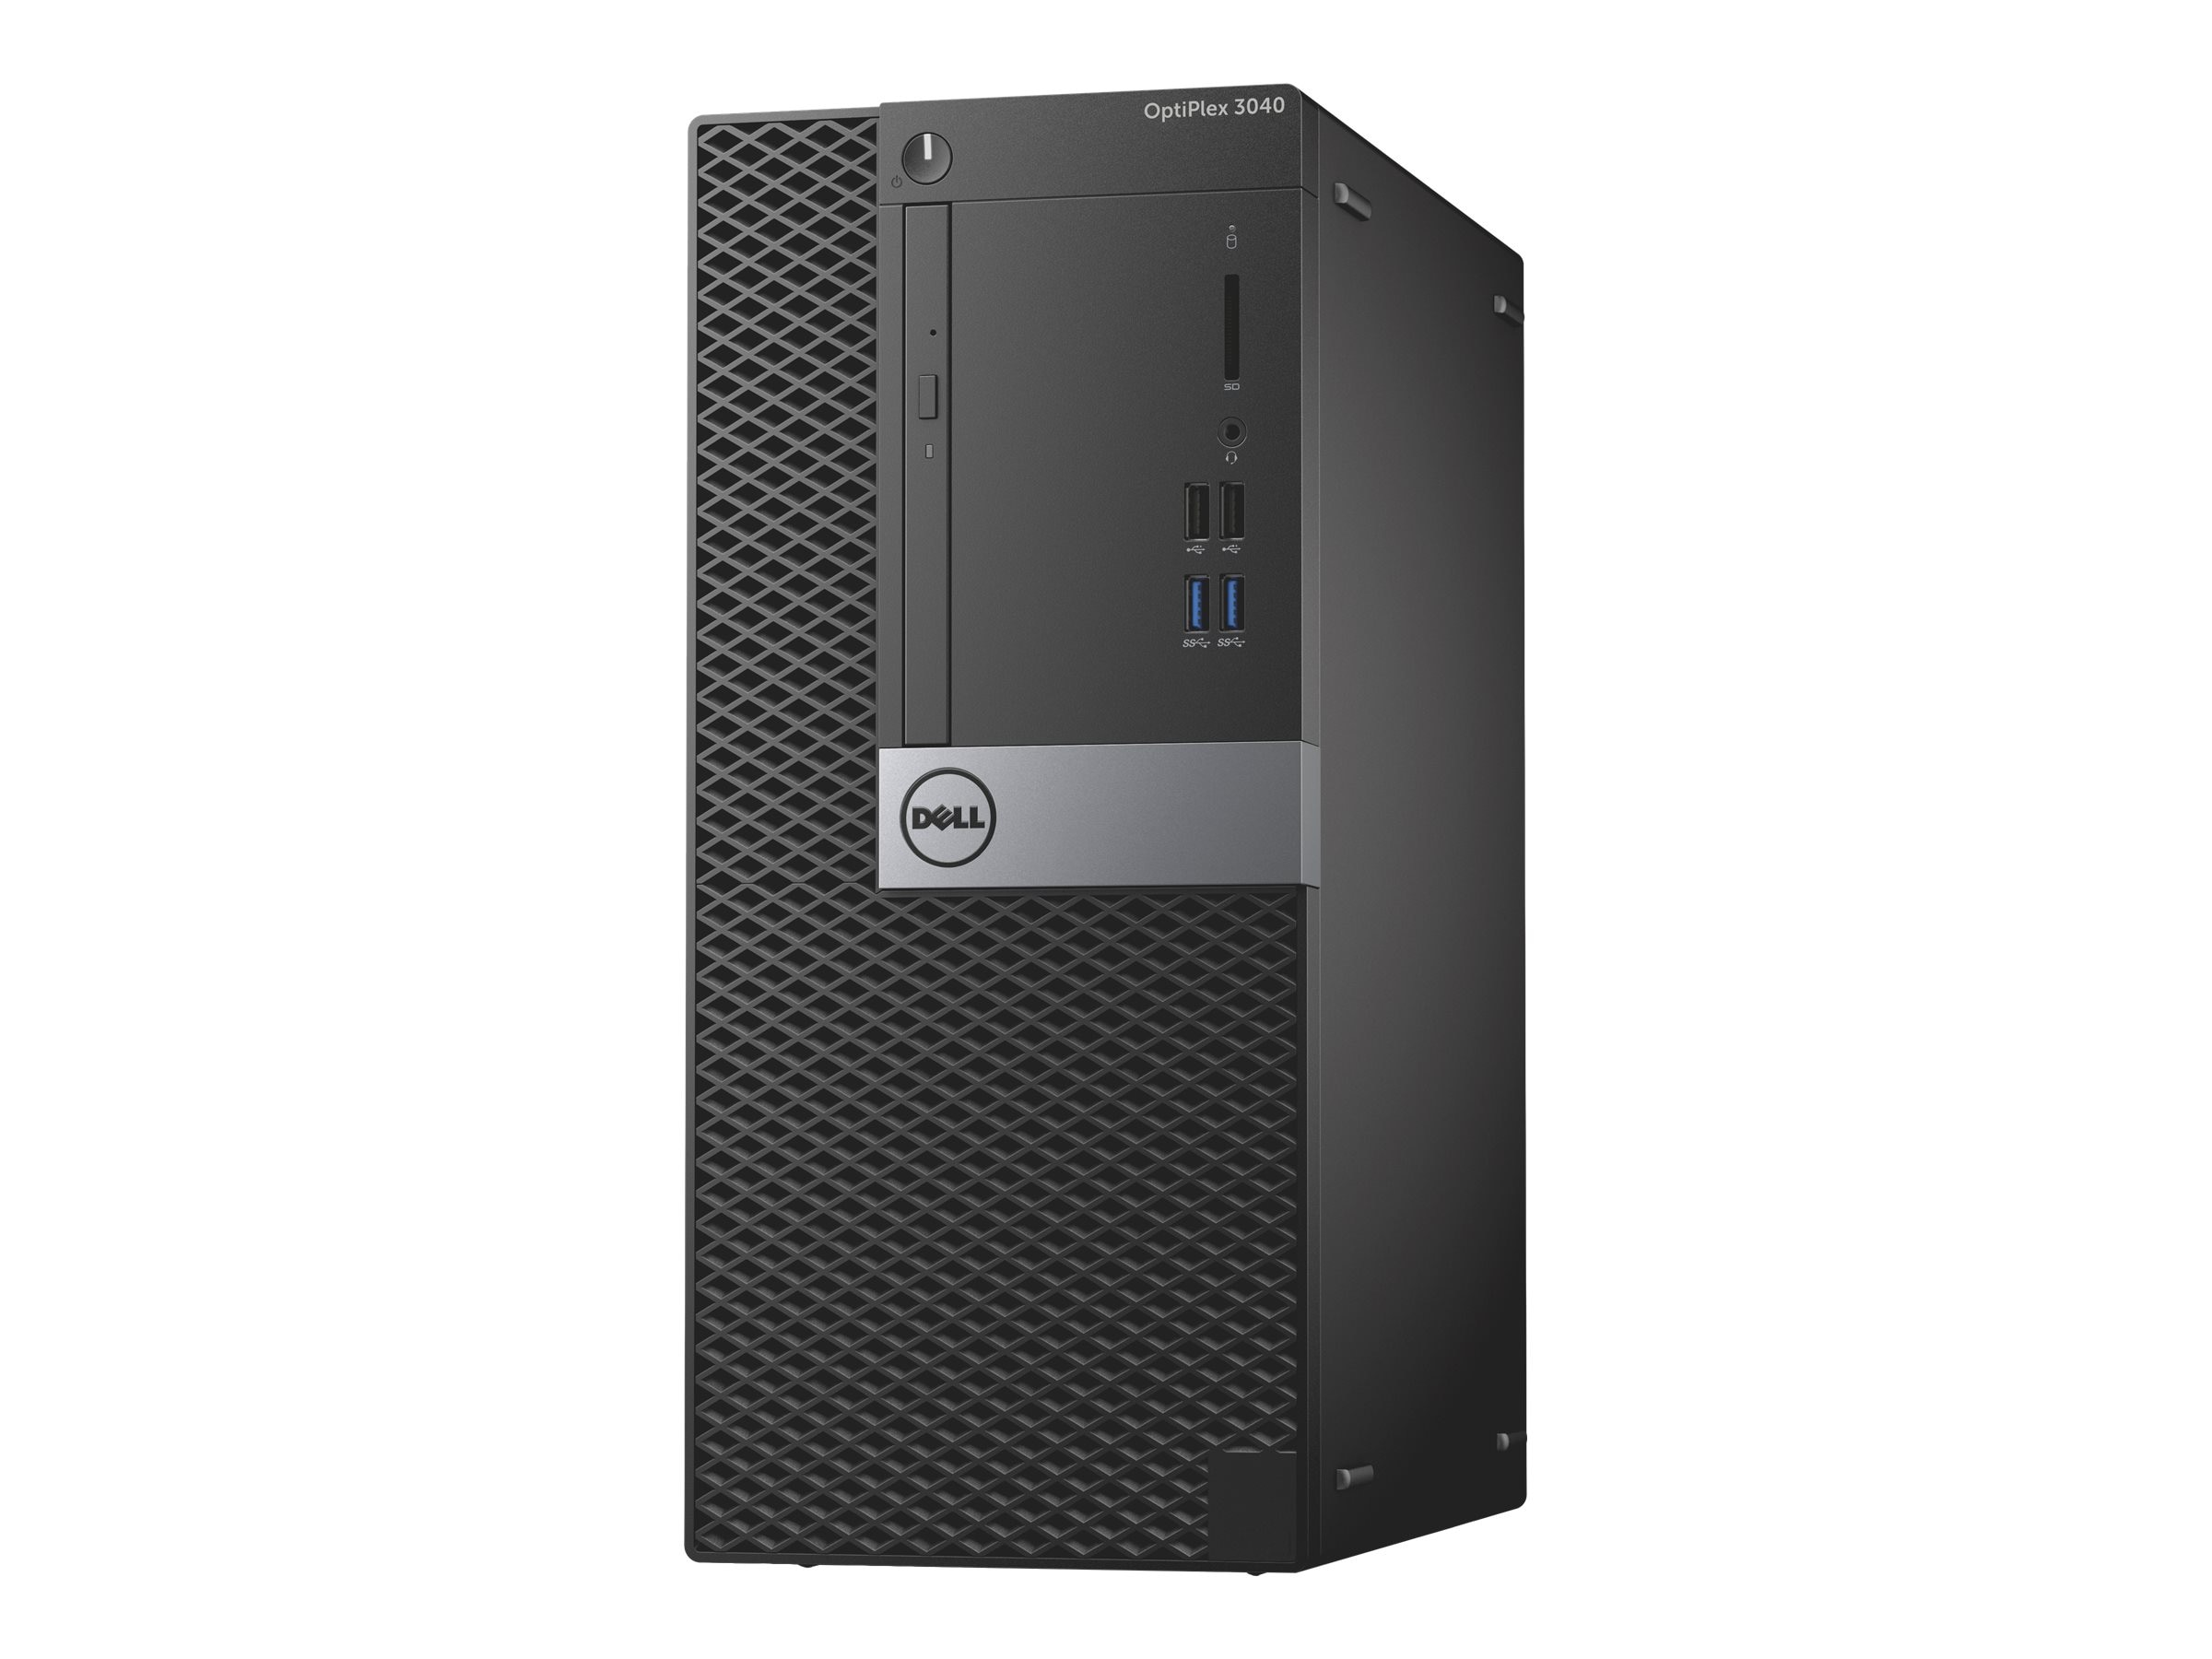 Dell OptiPlex 3040 3.7GHz Core i3 4GB RAM 500GB hard drive